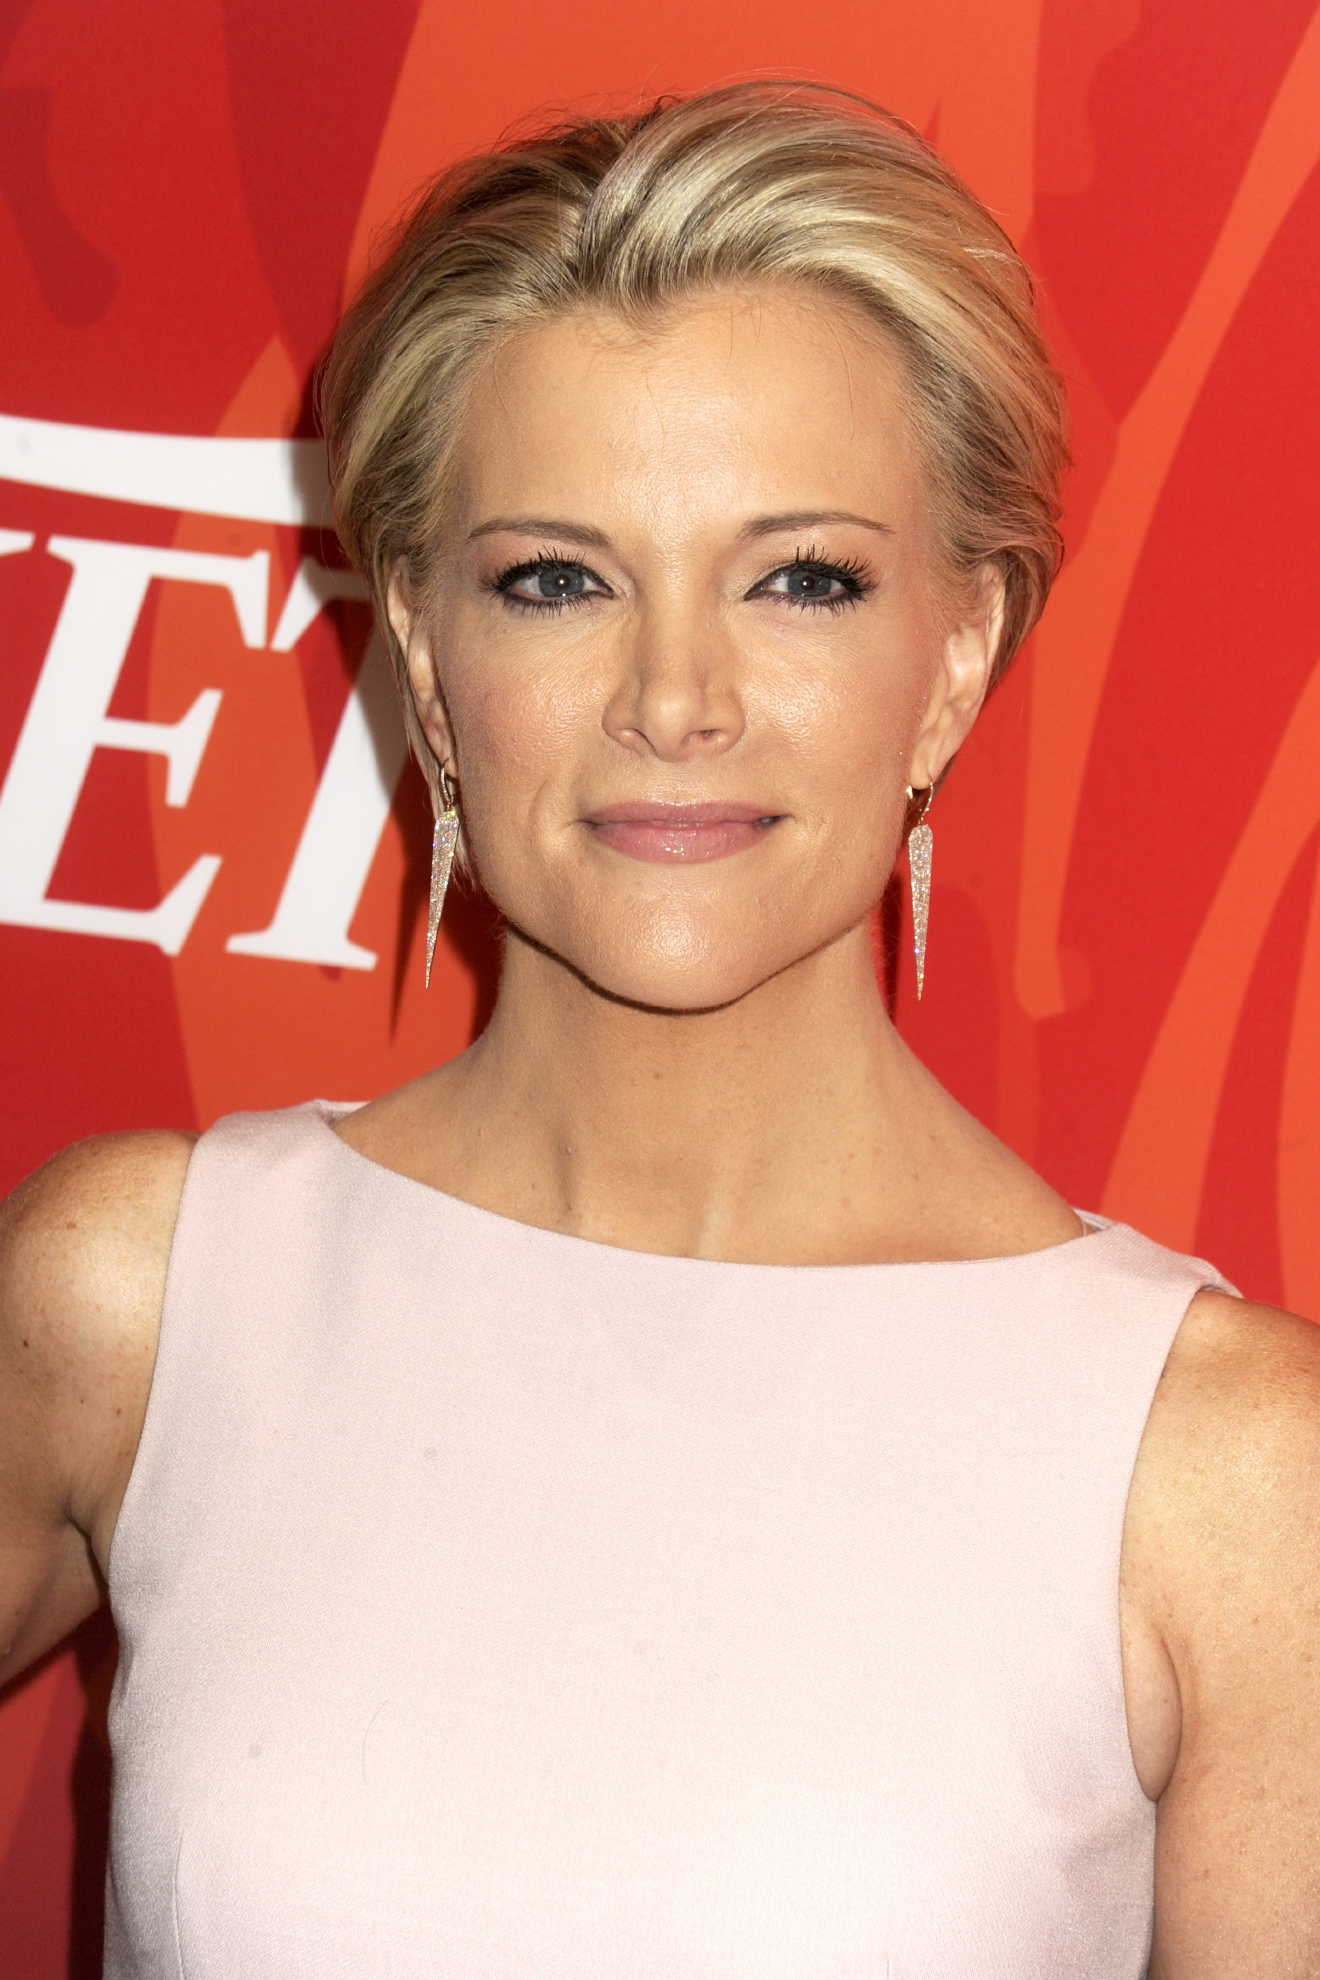 Variety's Power of Women New York luncheon at Cipriani 42nd Street - Arrivals                                    Featuring: Megyn Kelly                  Where: New York, New York, United States                  When: 08 Apr 2016                  Credit: Dennis Van Tine/Future Image/WENN.com